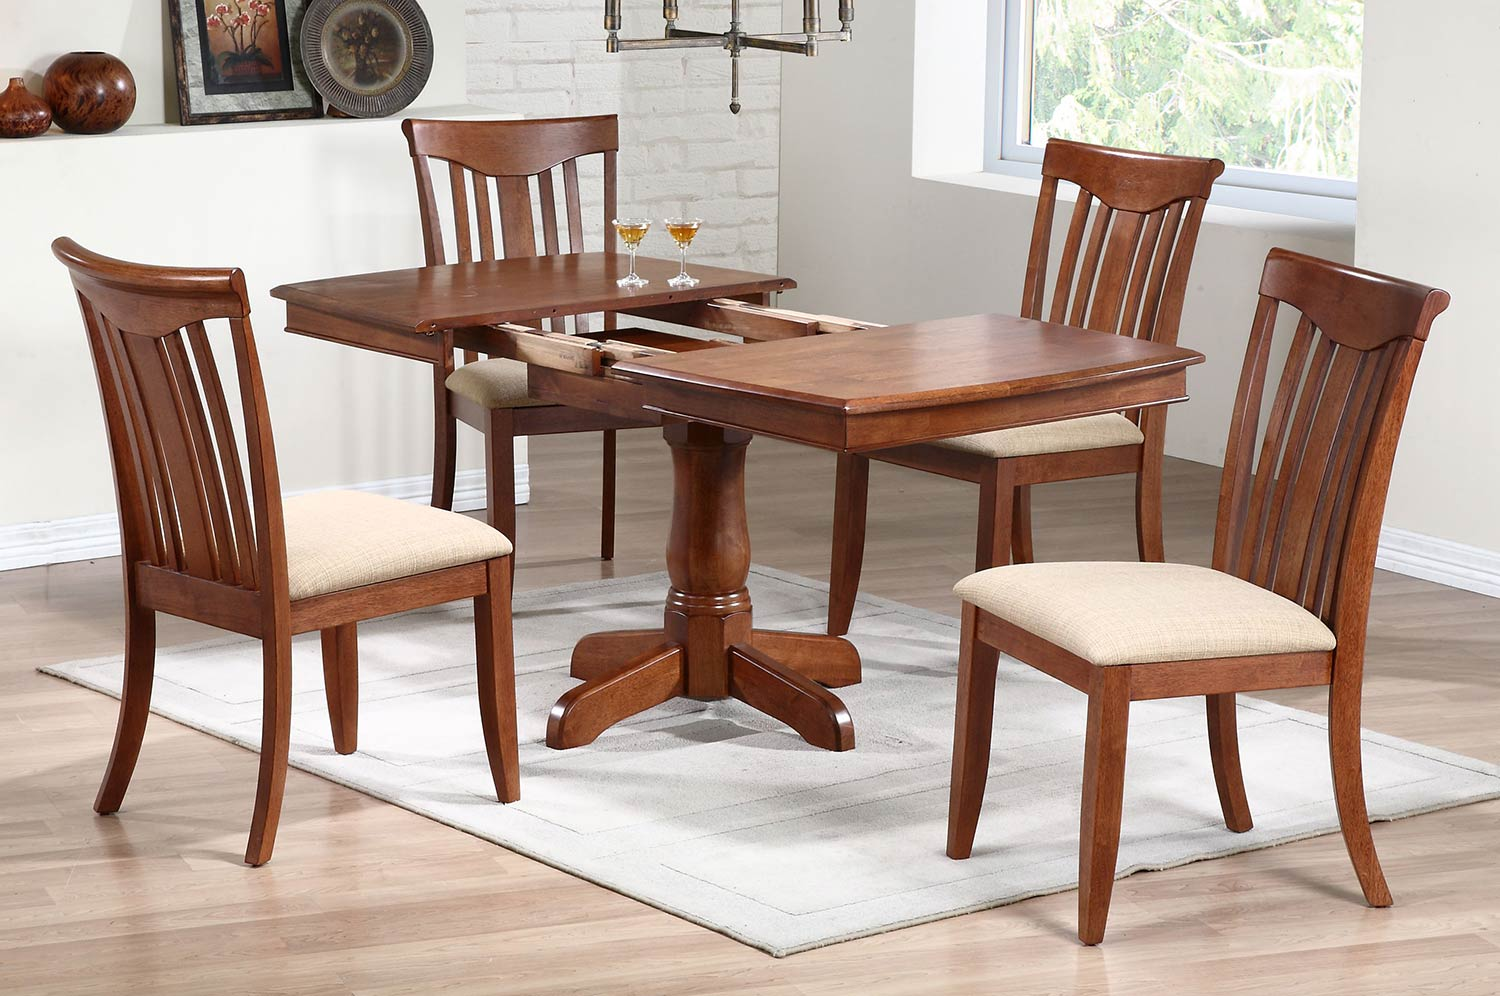 Iconic Furniture Single Pedestal Boat Shaped Dining Set with Modern Slat Back Chair - Cinnamon